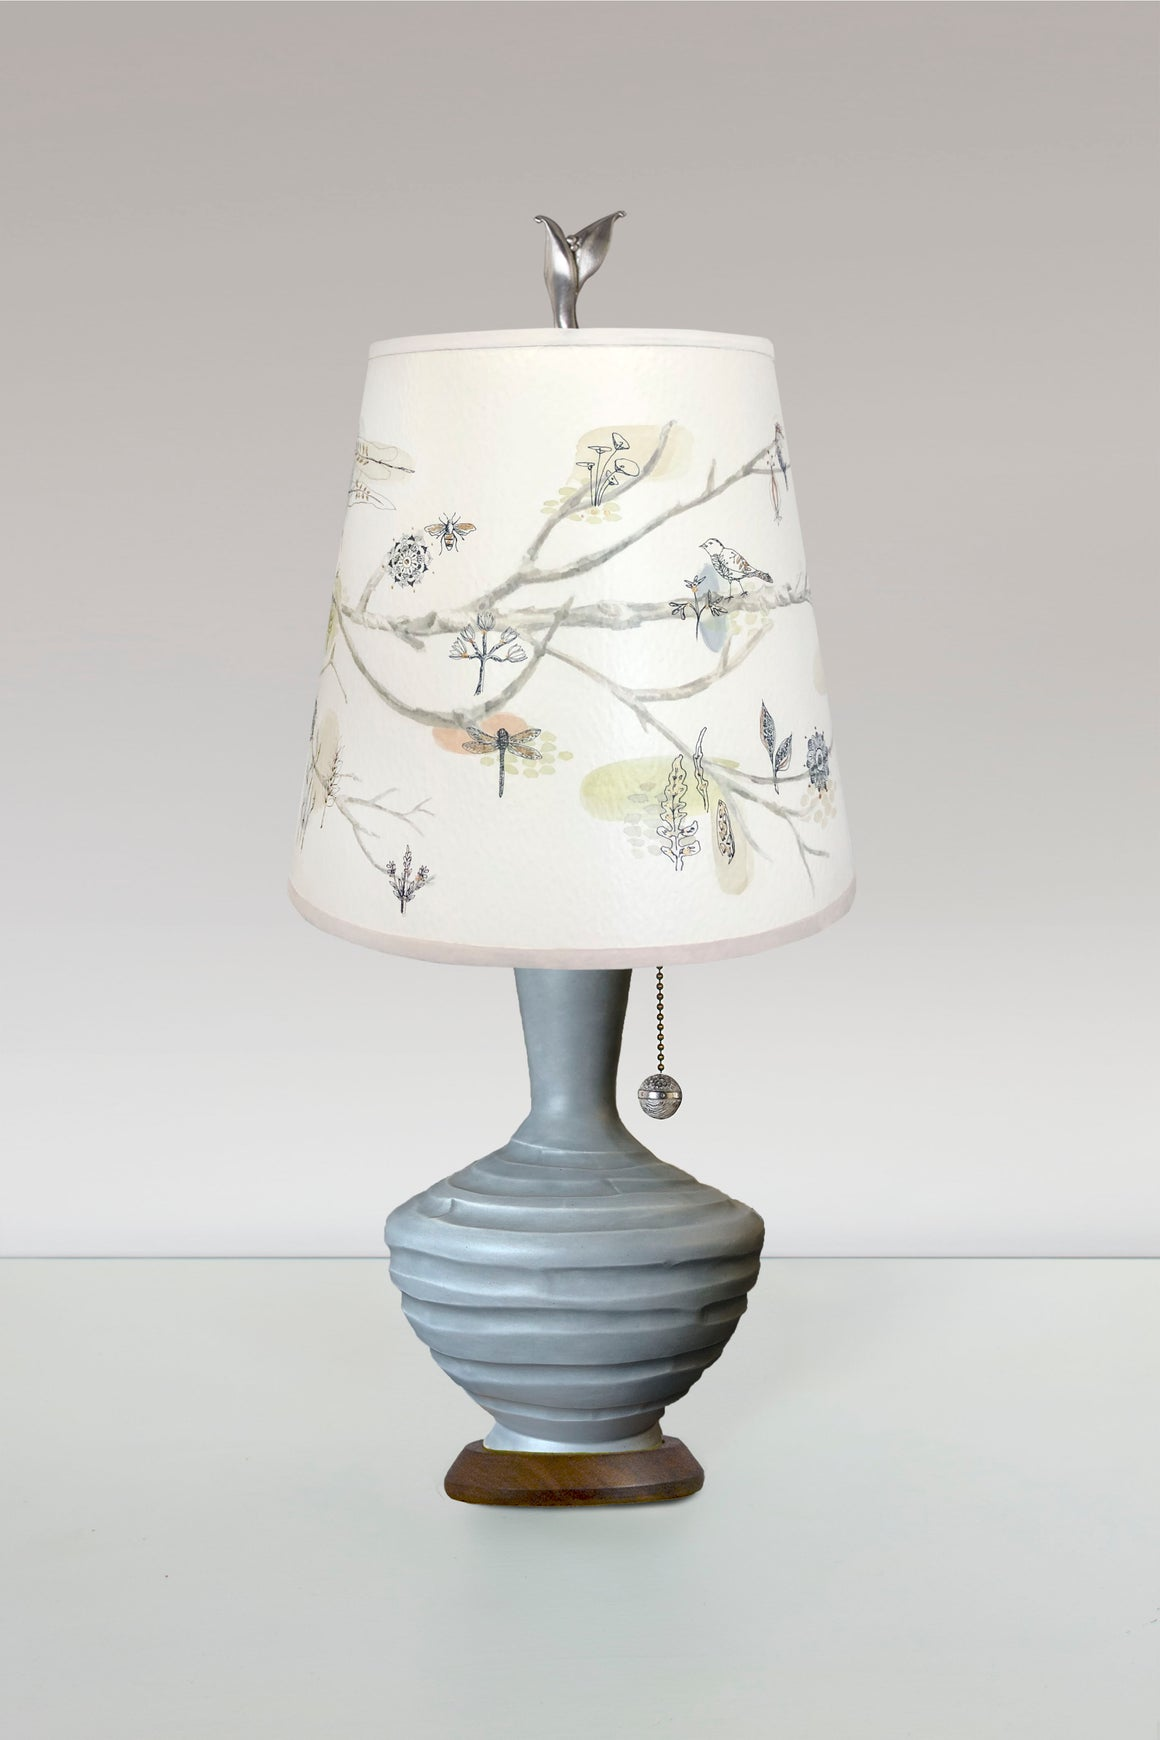 Dove Grey Ceramic Table Lamp with Small Drum Shade in Artful Branch